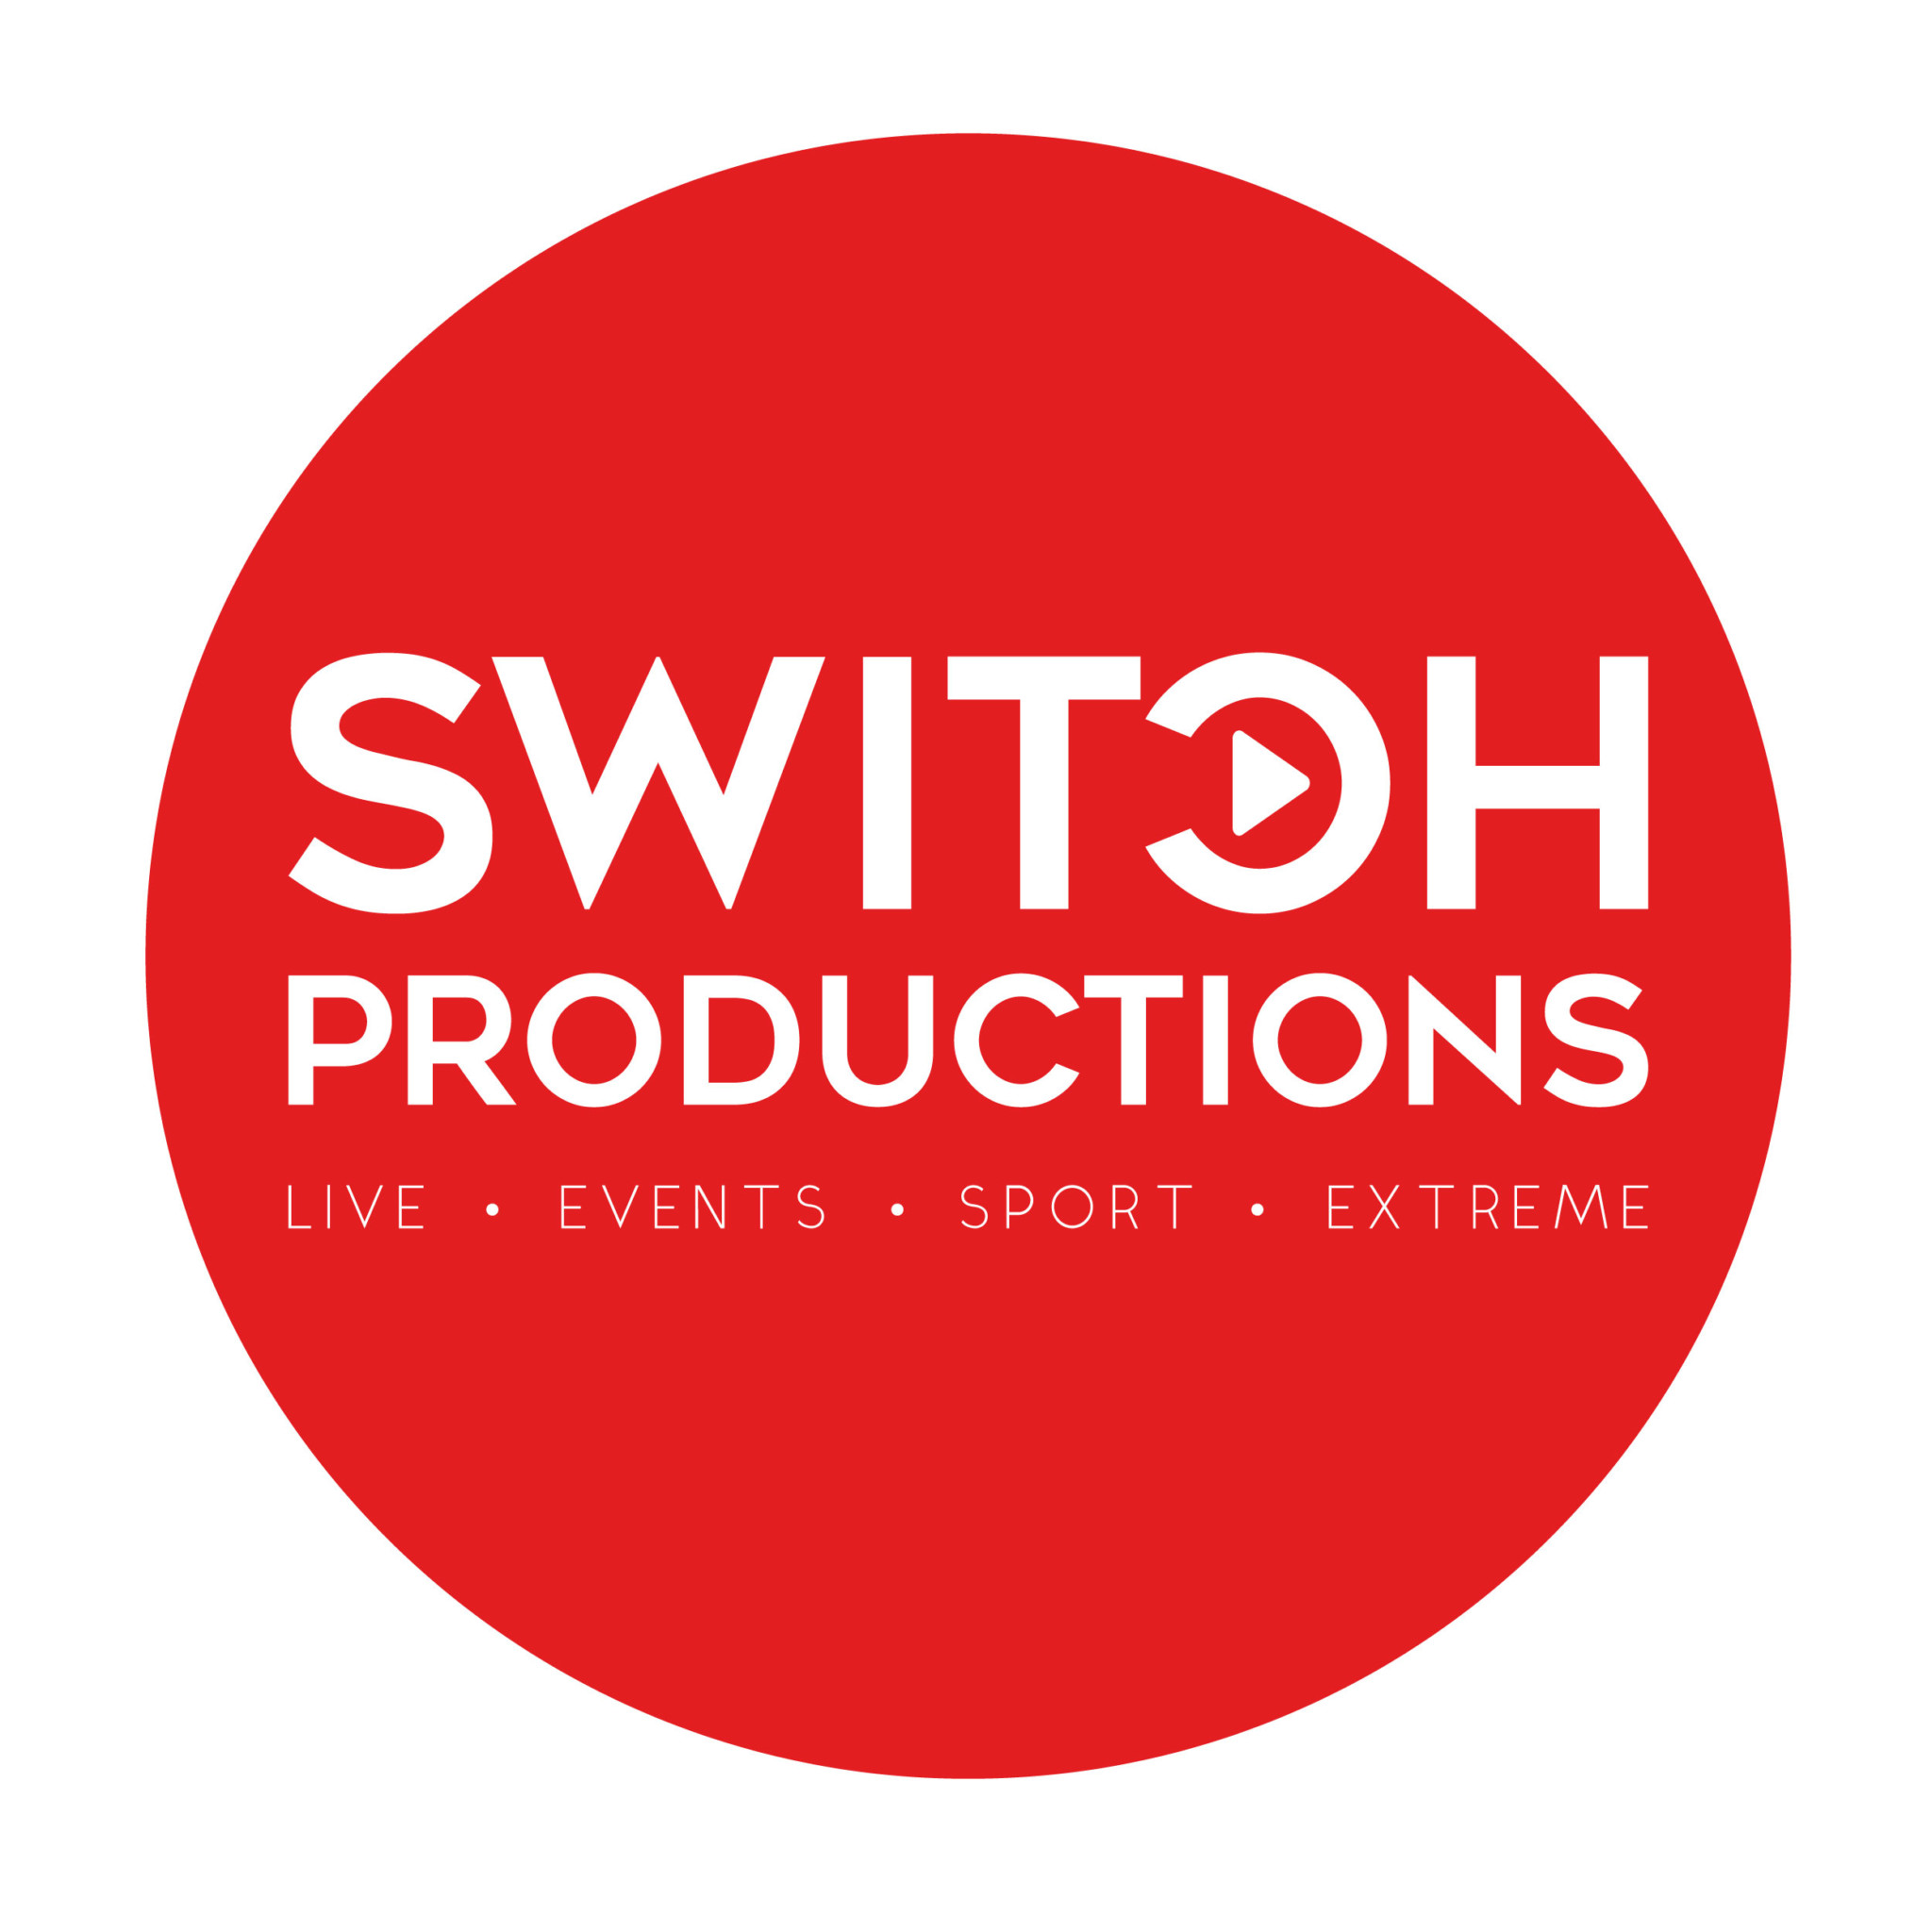 switch-production